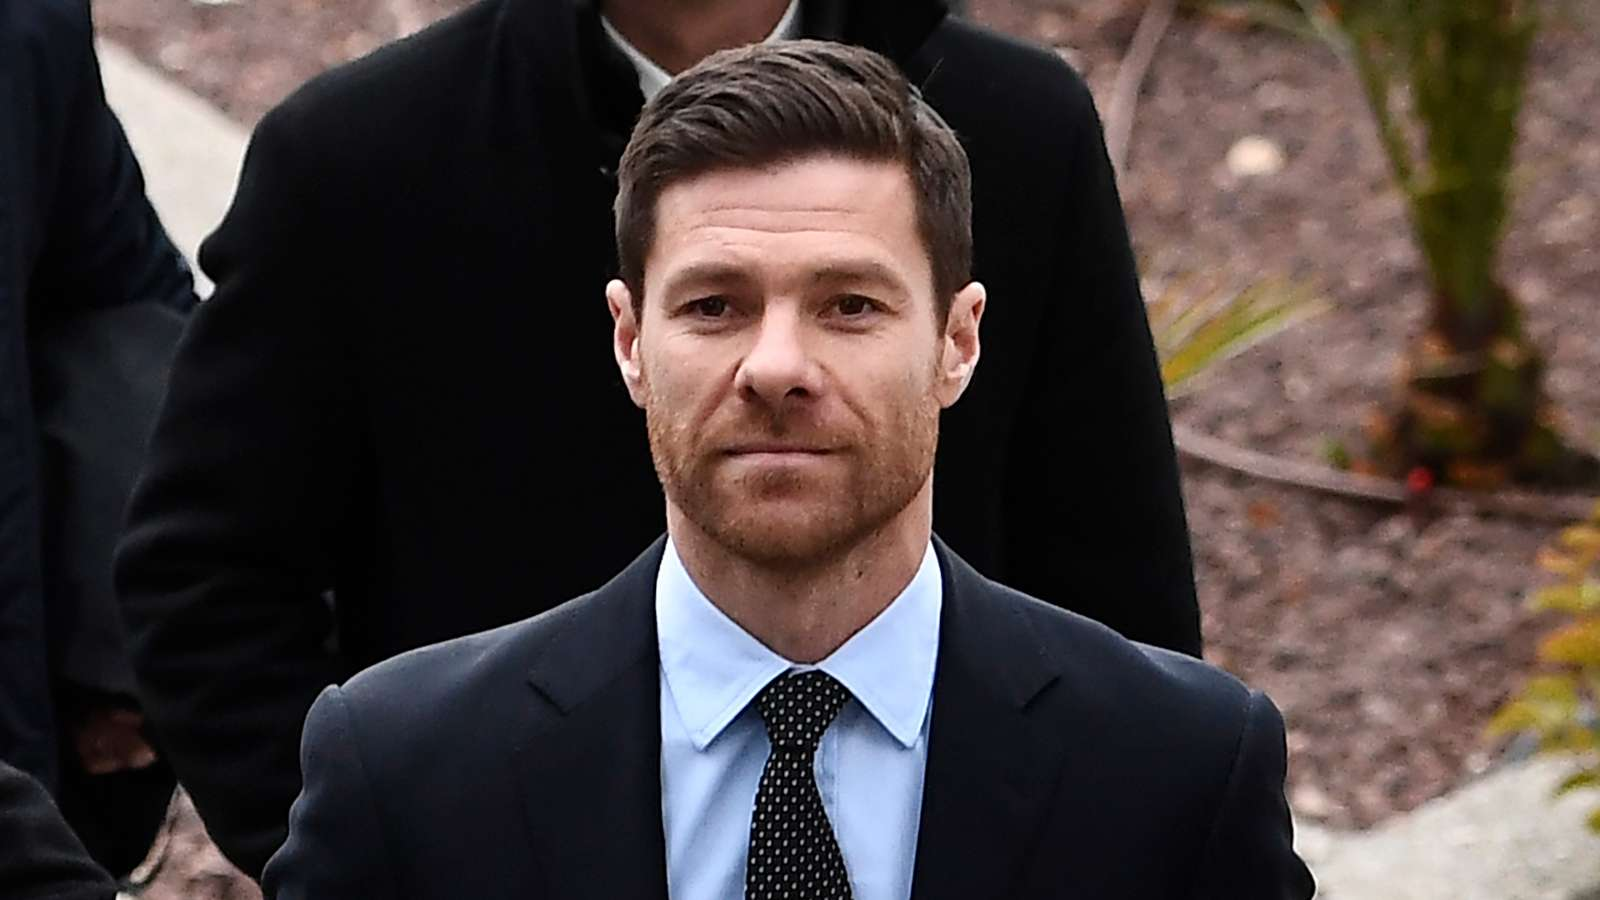 The court acquits Xabi Alonso of fraud and tax evasion